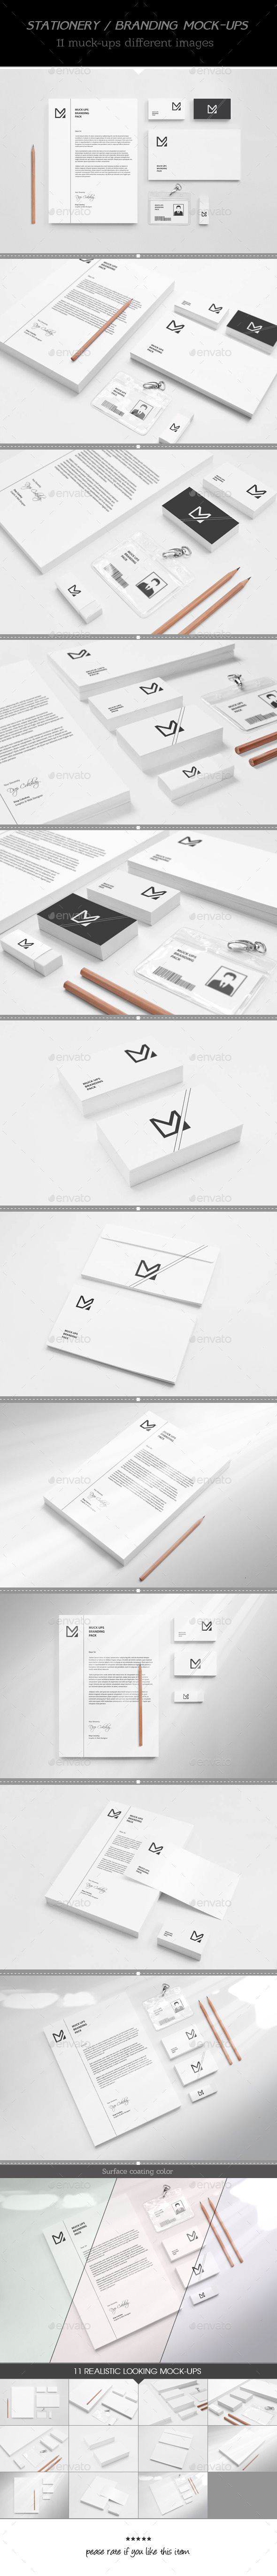 Flower Shop Identity Brading Mock-Up (Stationery)